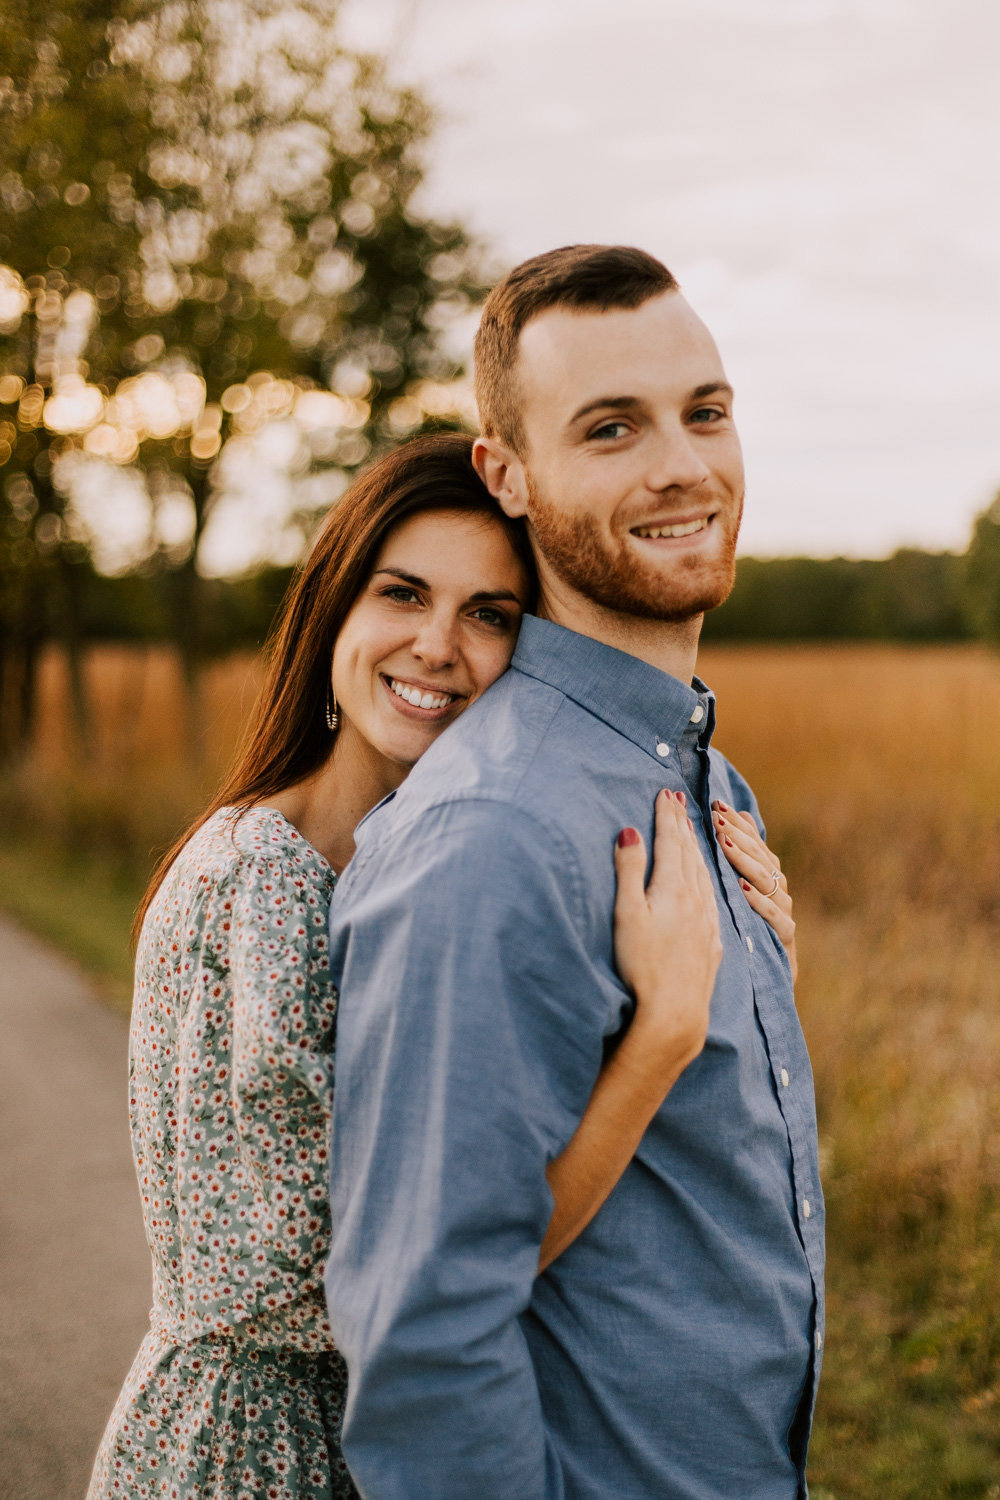 Sunset-Autumn-Engagement-Session-Prophetstown-27